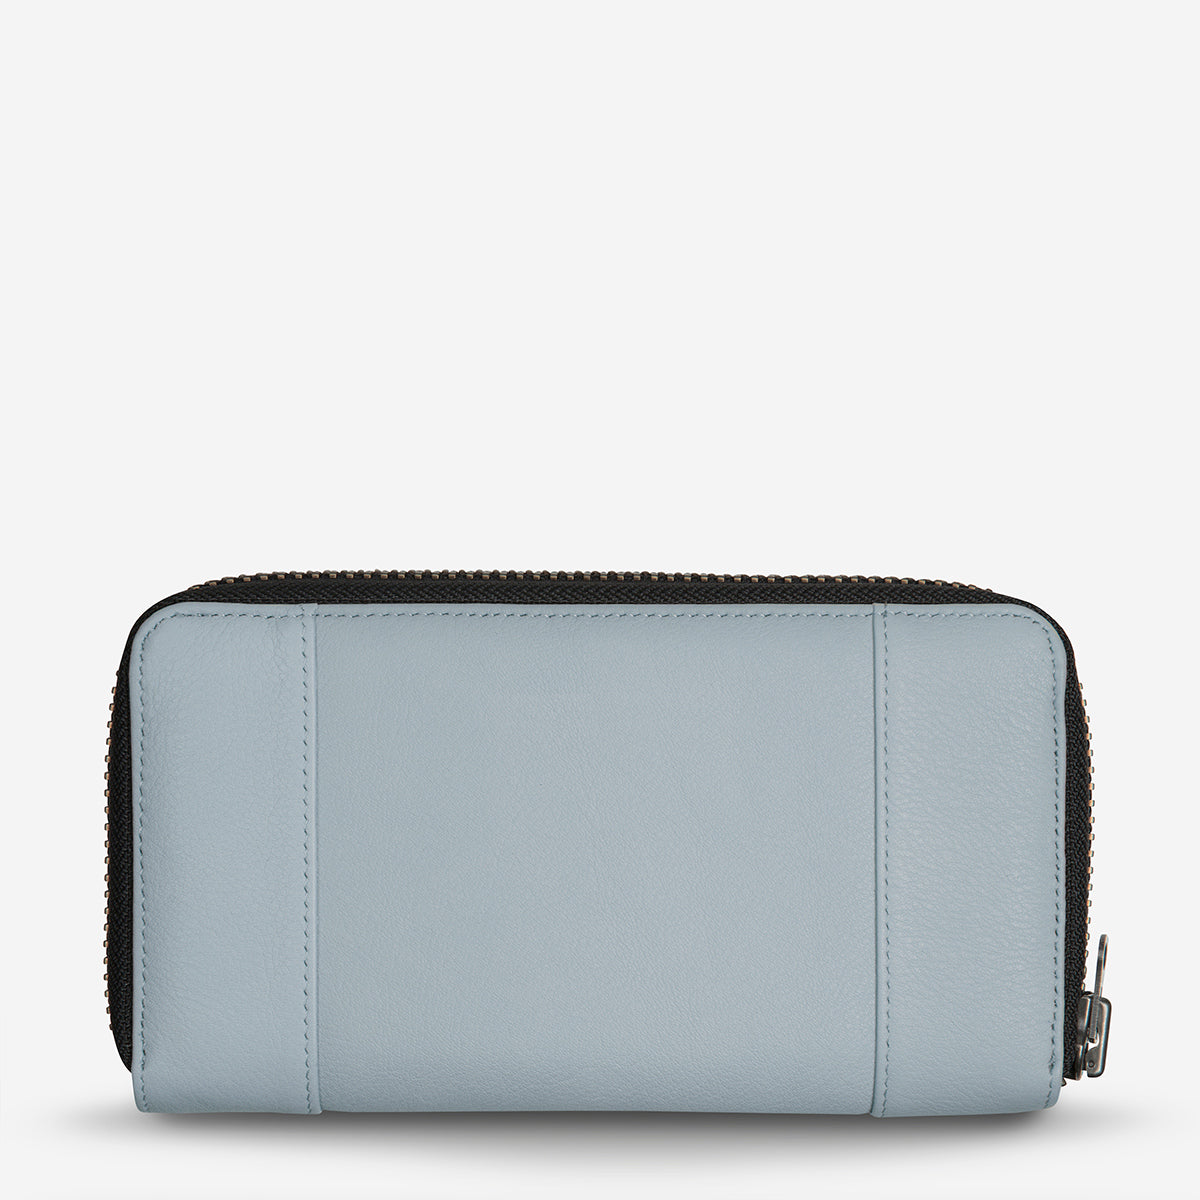 Status Anxiety State Of Flux Leather Wallet - Arctic Grey